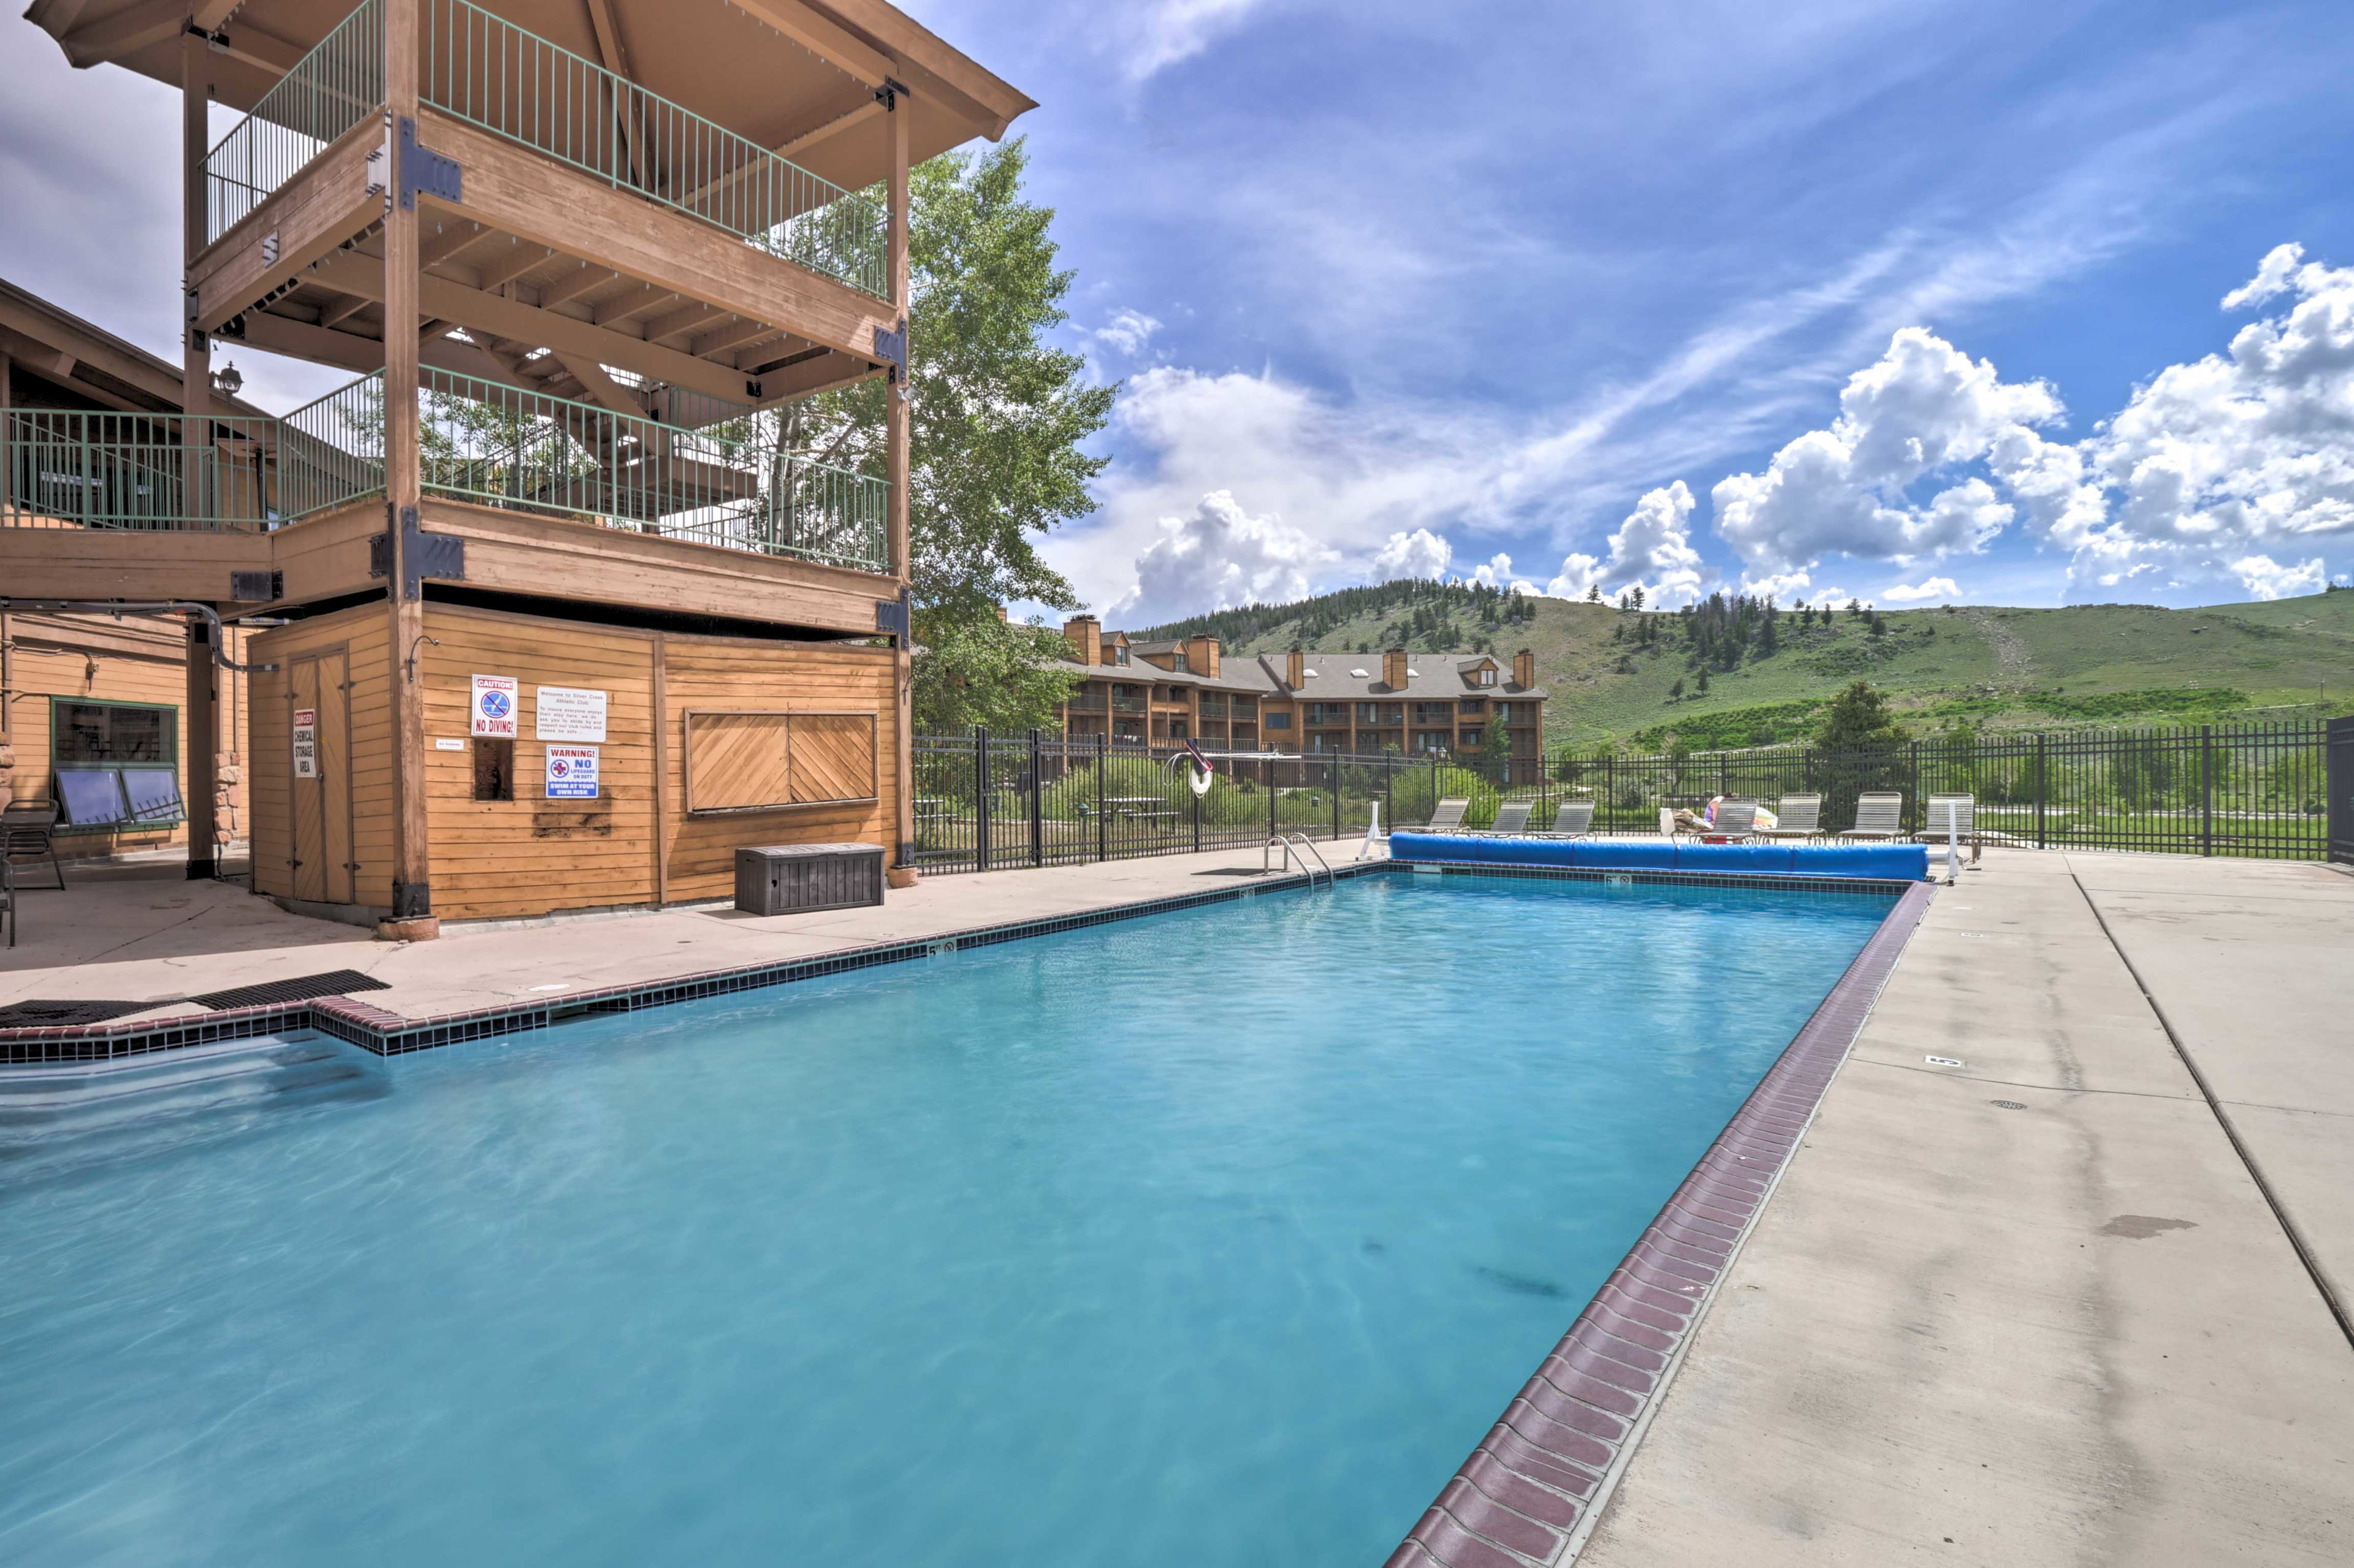 Dive into the heated pool at this Granby resort studio.